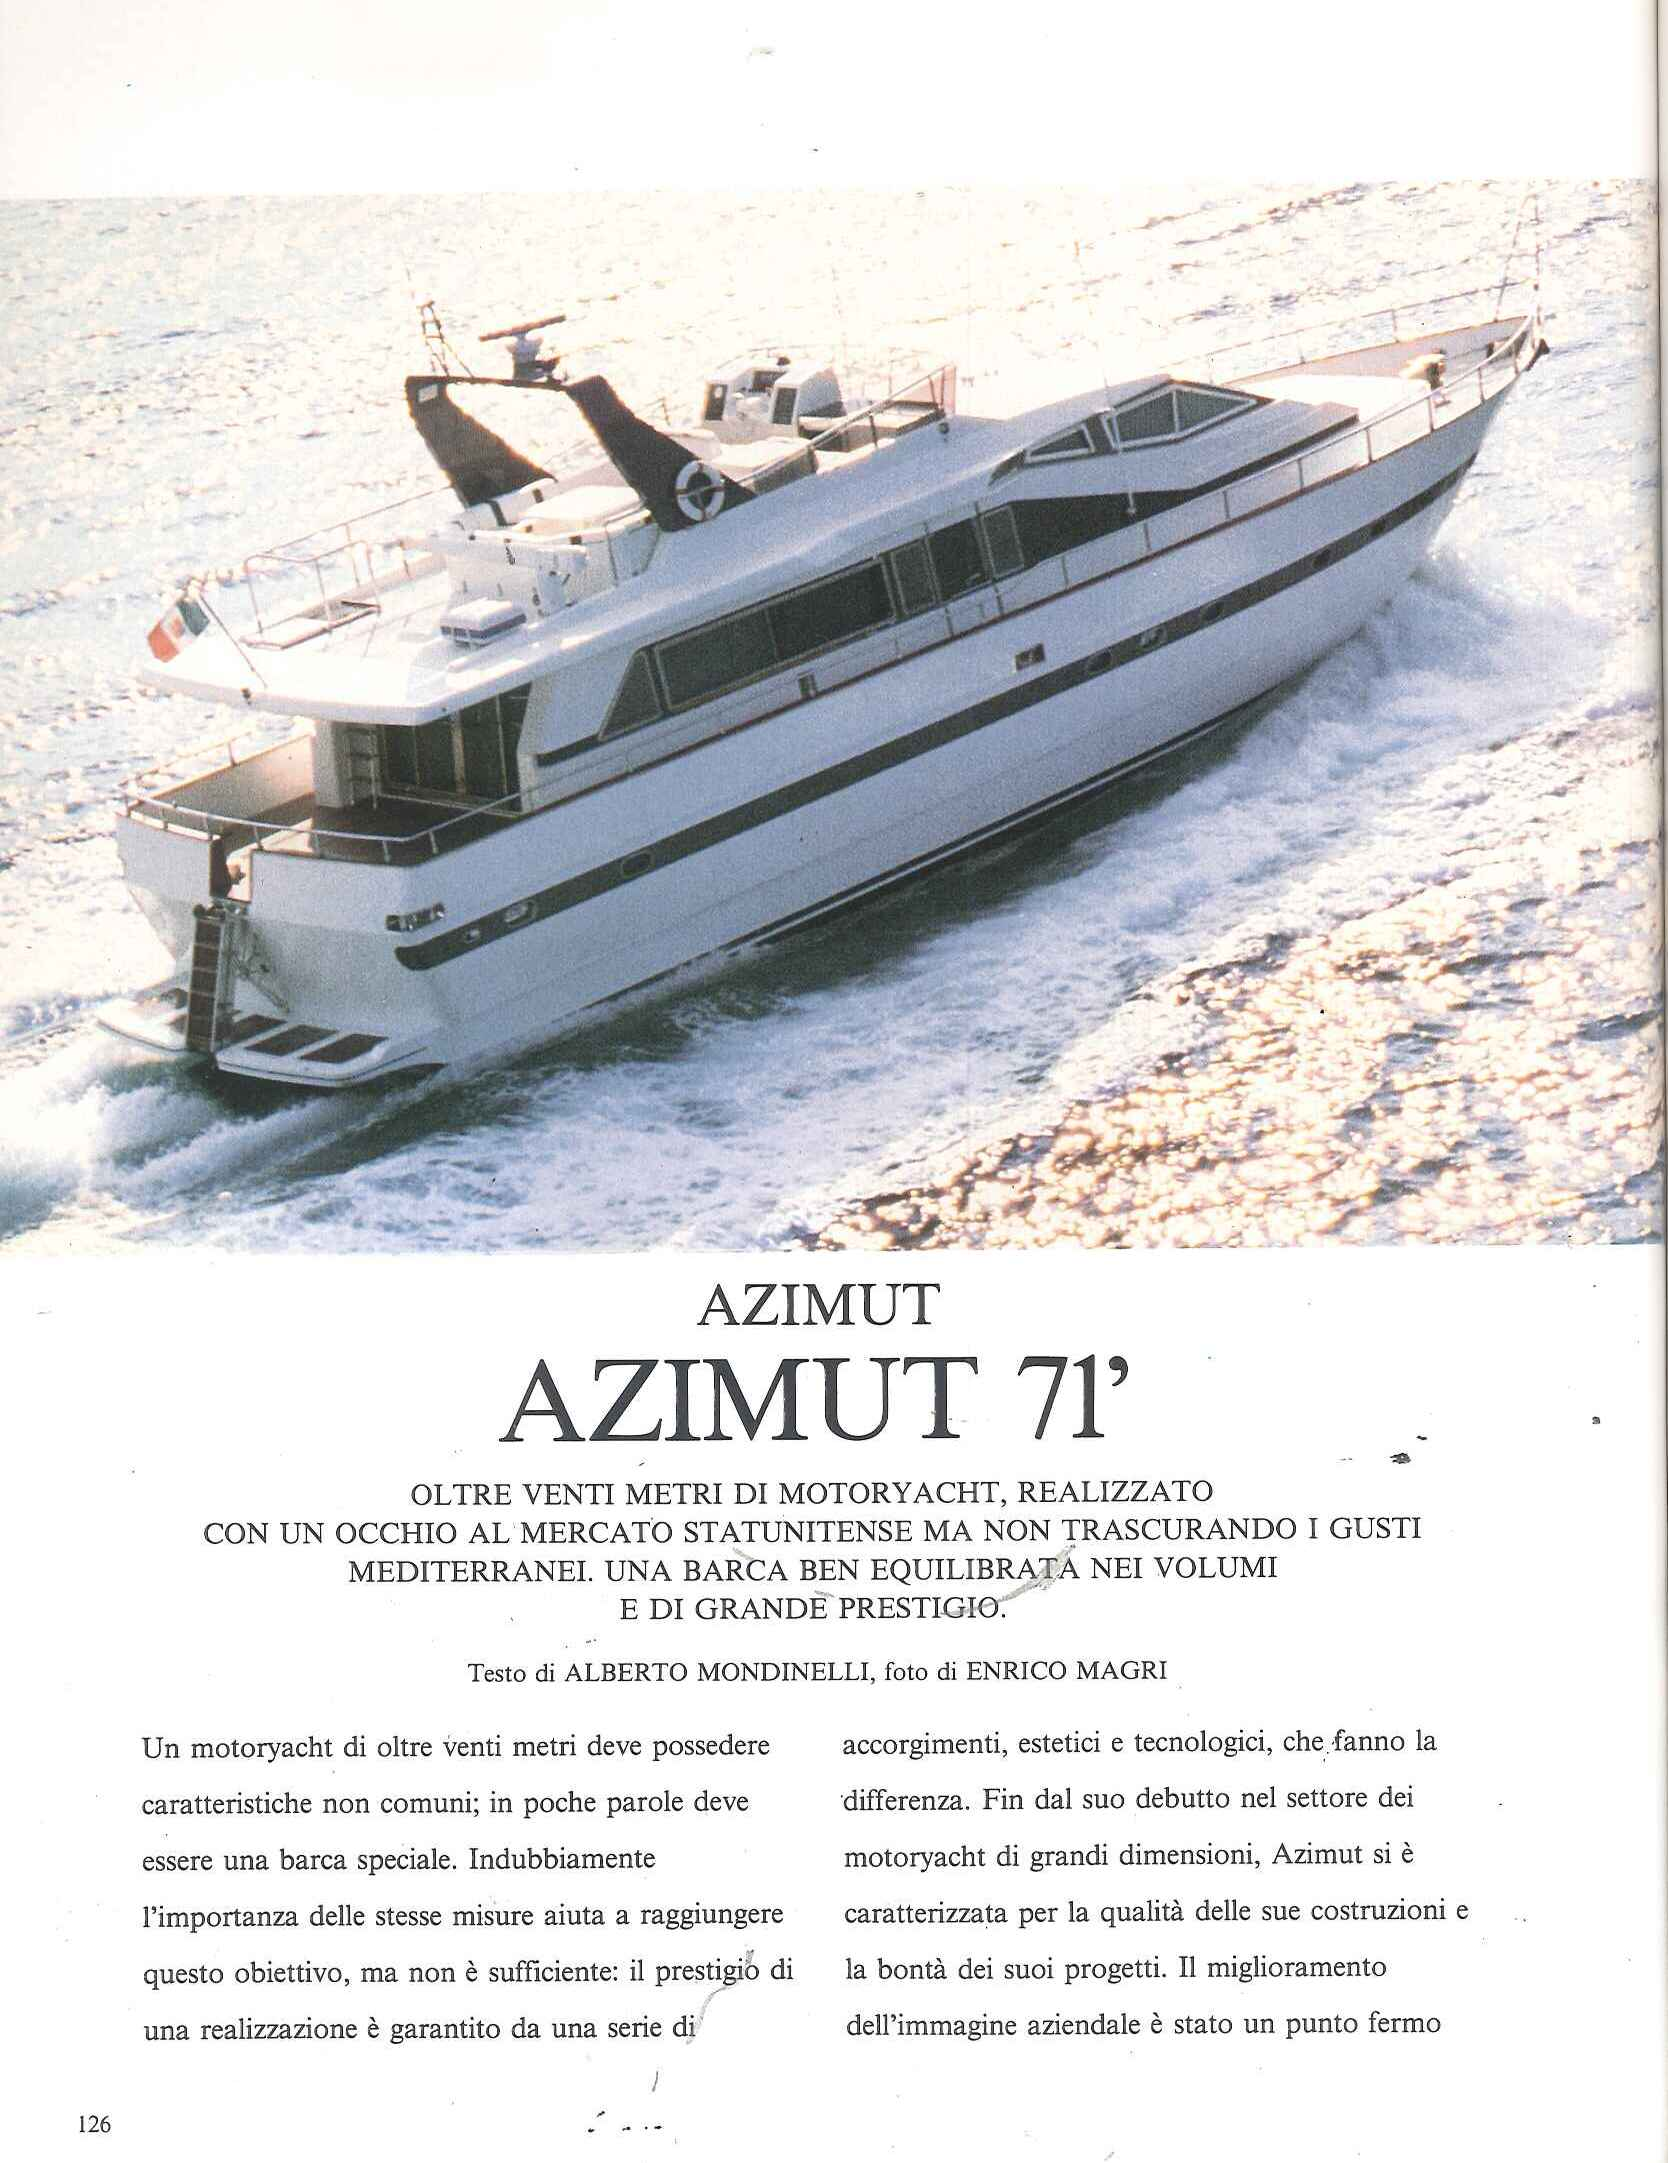 1989 04 PRESS AZIMUT 71 UOMO MARE 129 (01).jpg